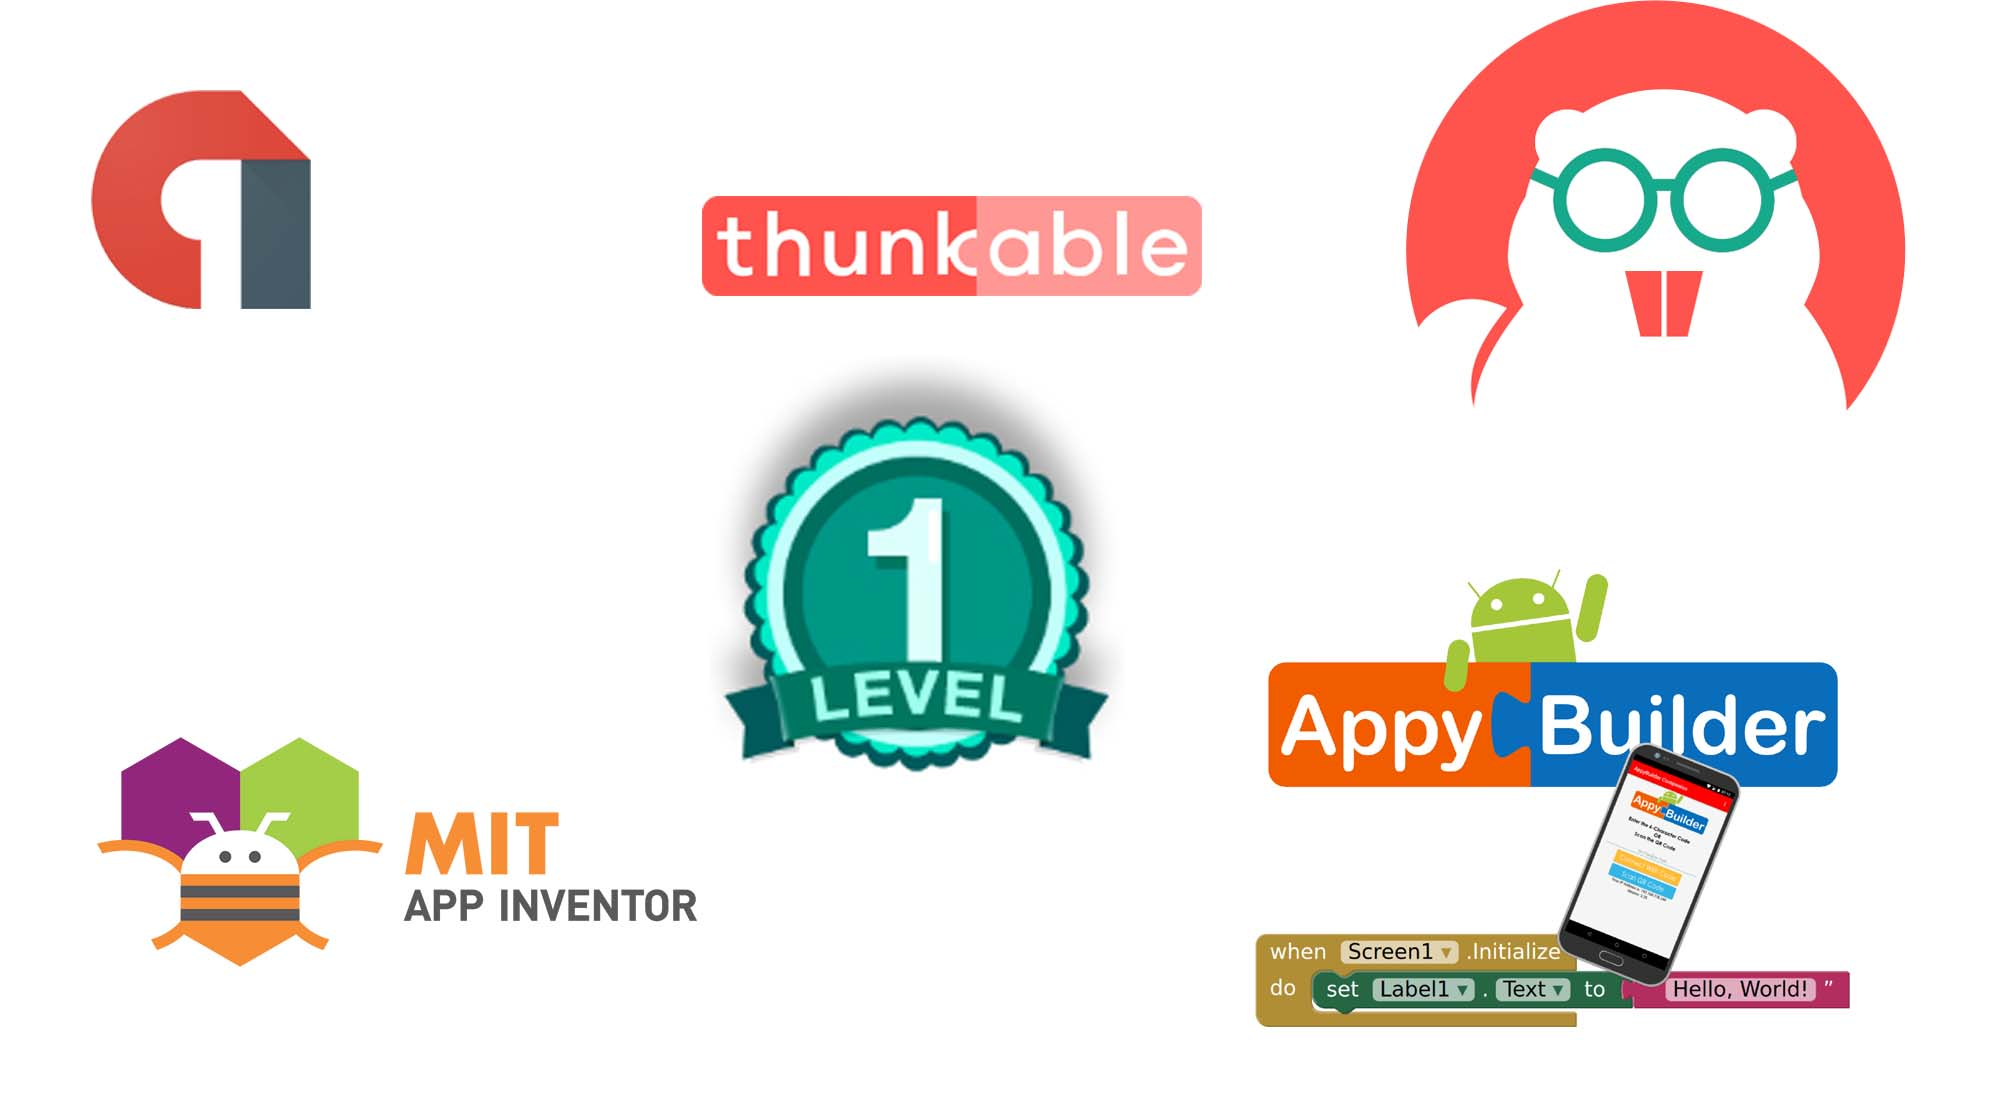 Create mit, thunkable, appybuilder android app and fix bug